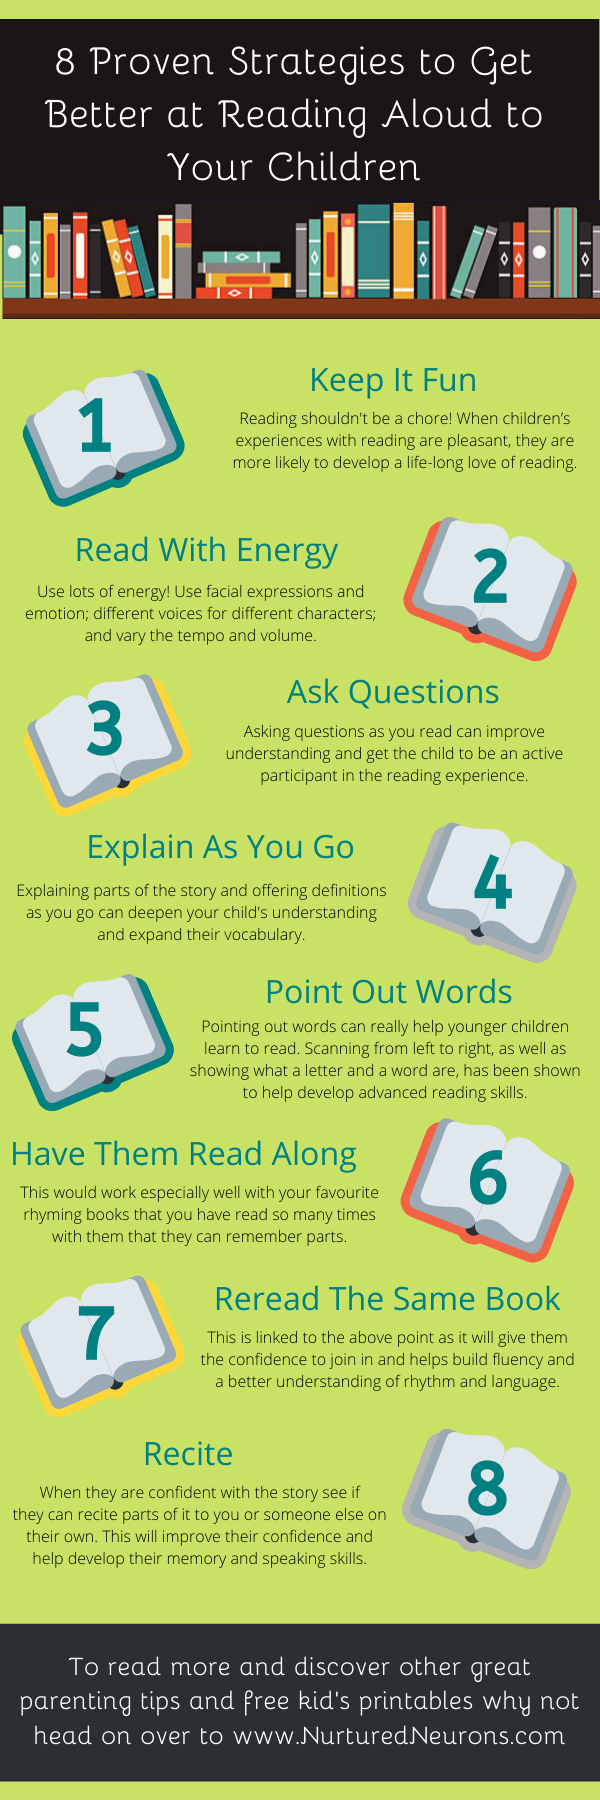 8 Proven Strategies to Get Better at Reading to Children Infographic